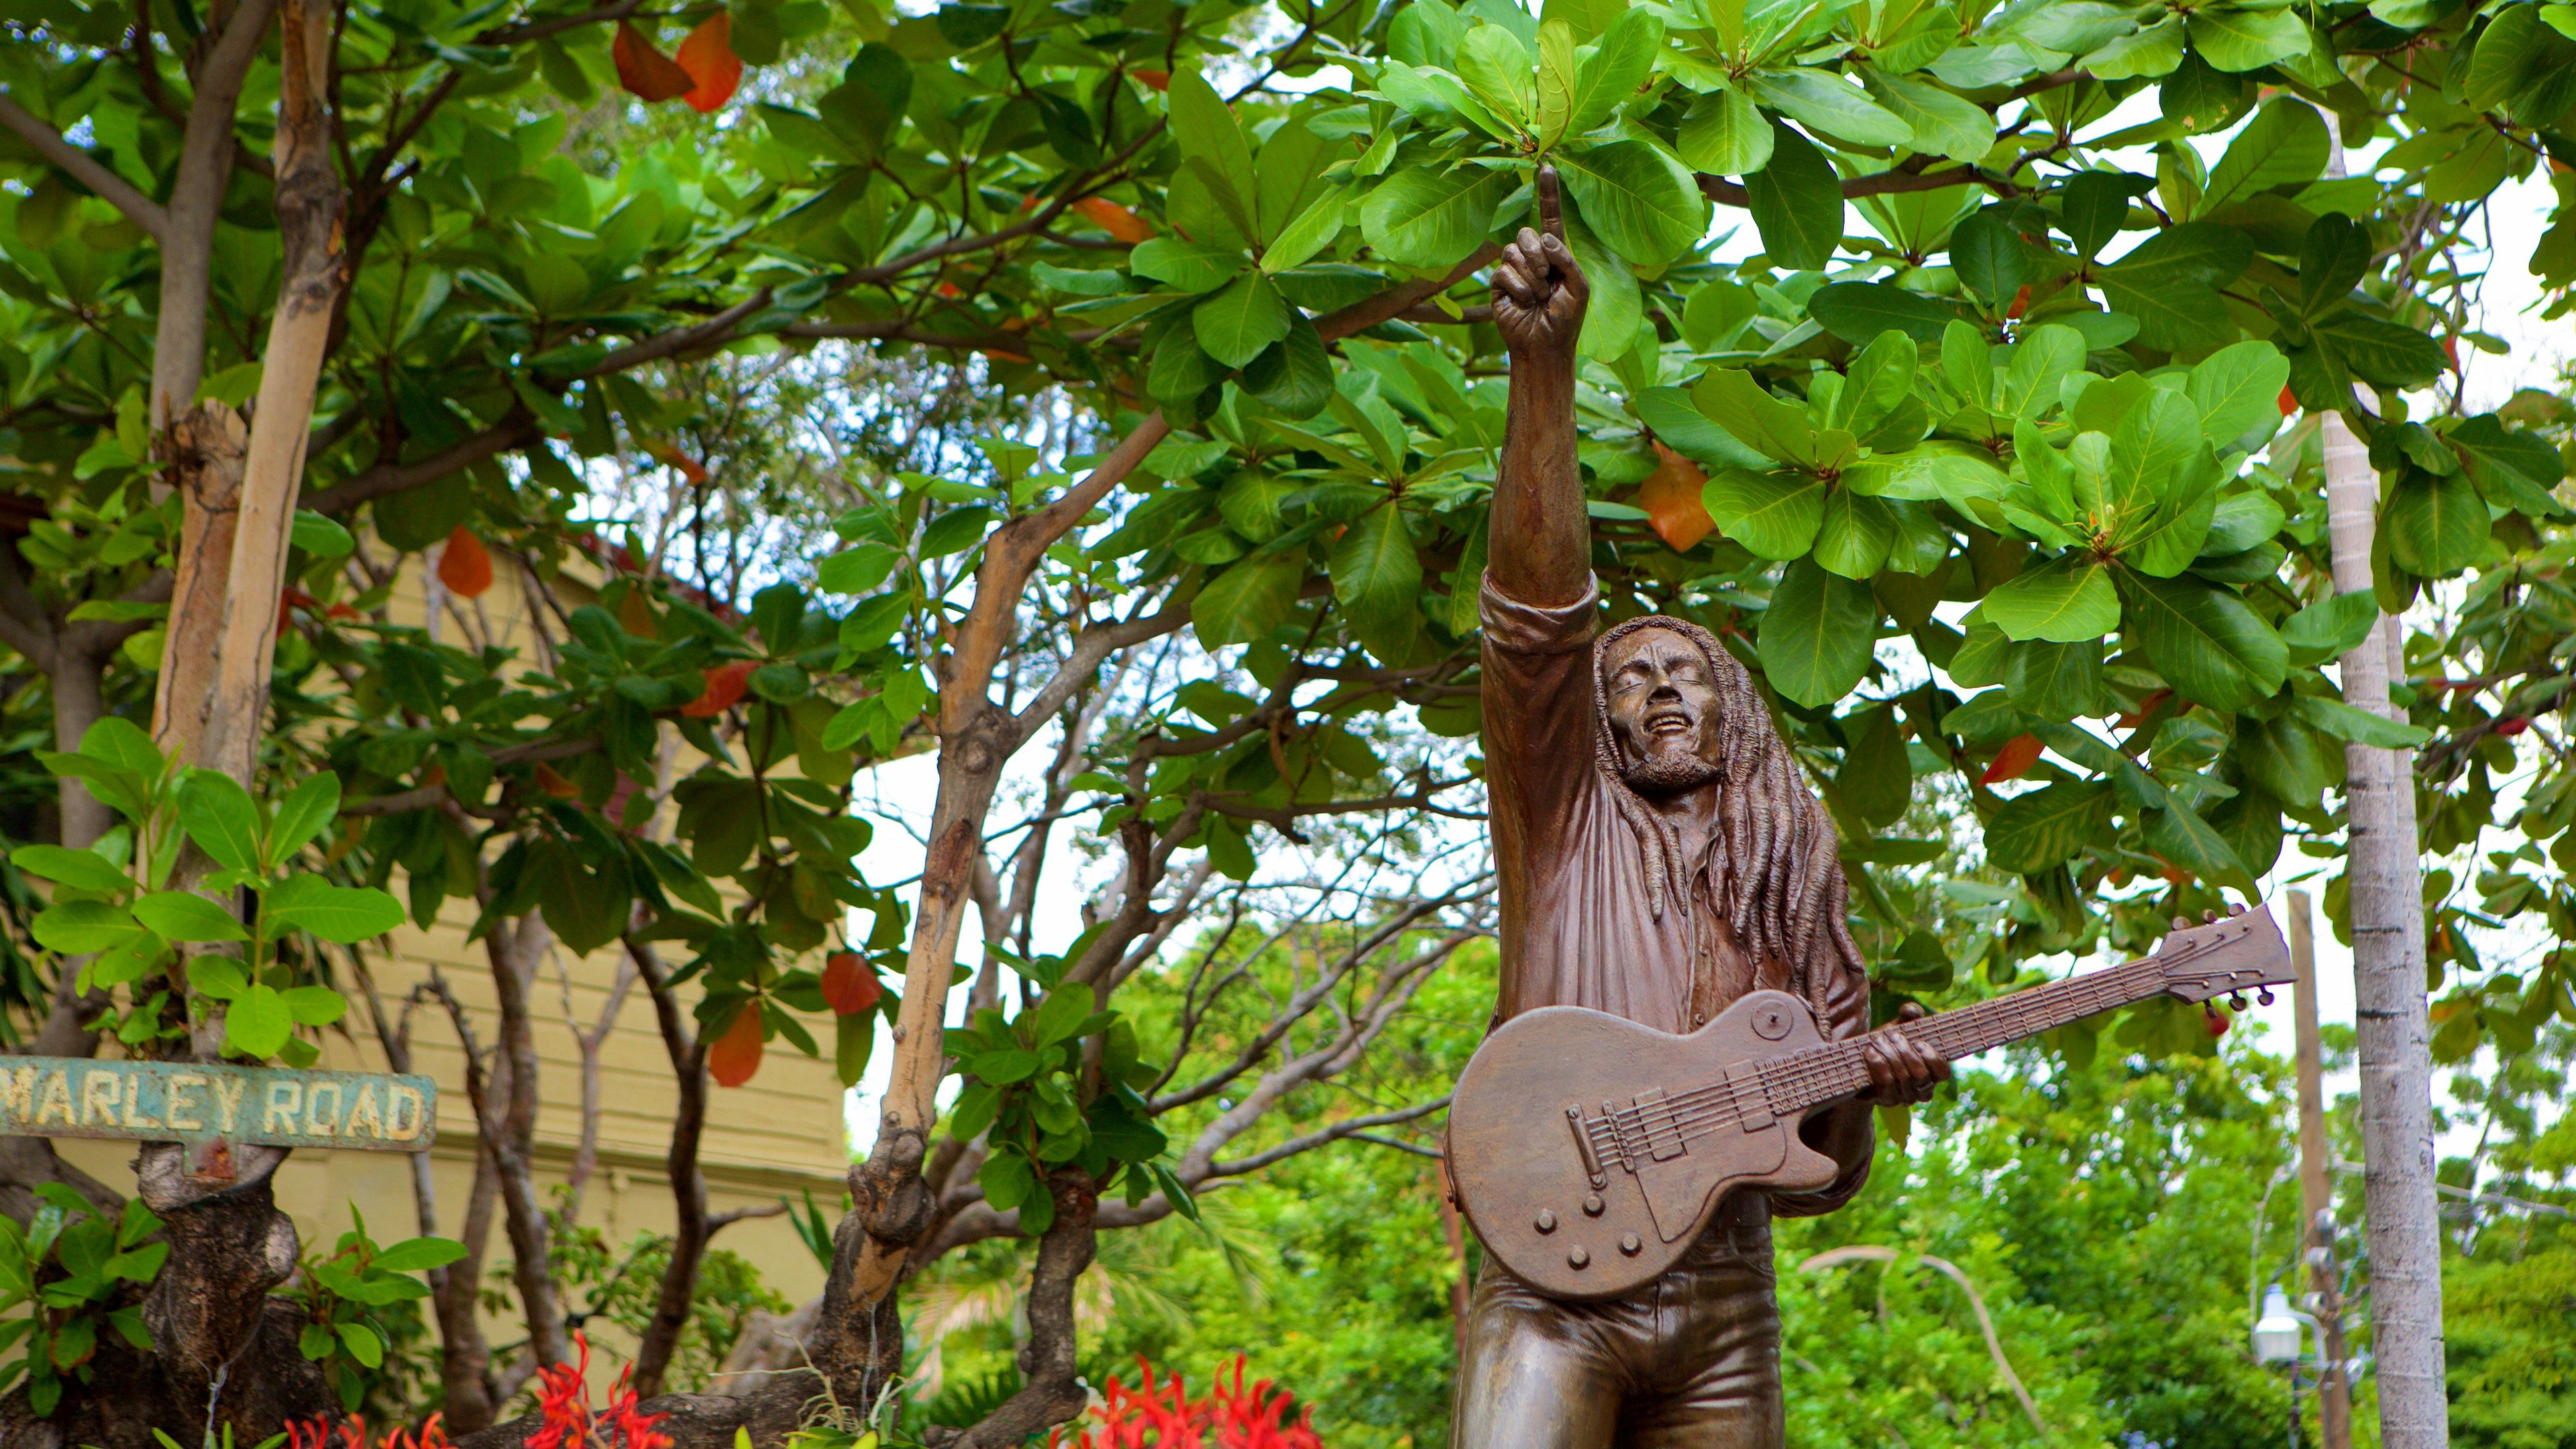 Statue of Bob Marley in Jamaica